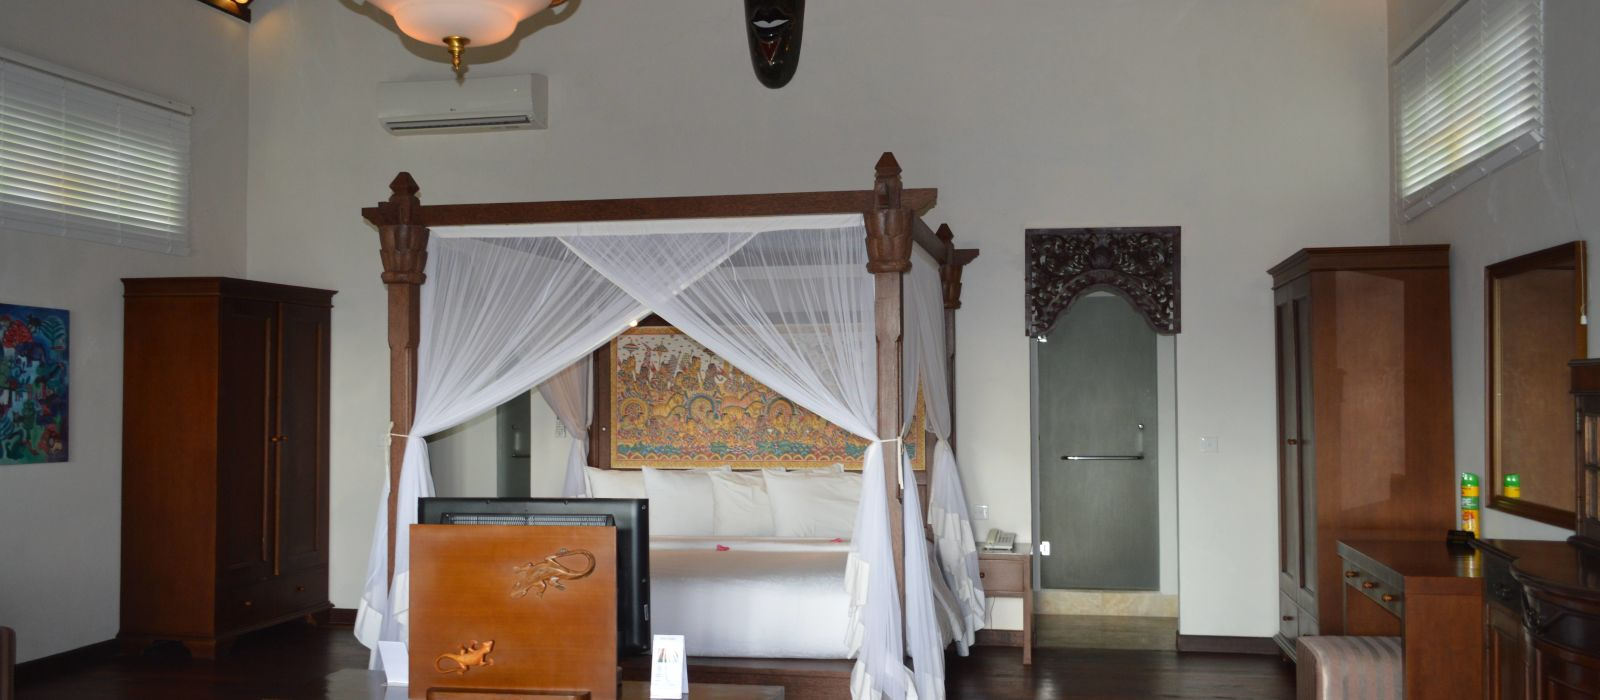 Puri mas boutique resort spa hotel in indonesia for 56 west boutique and salon